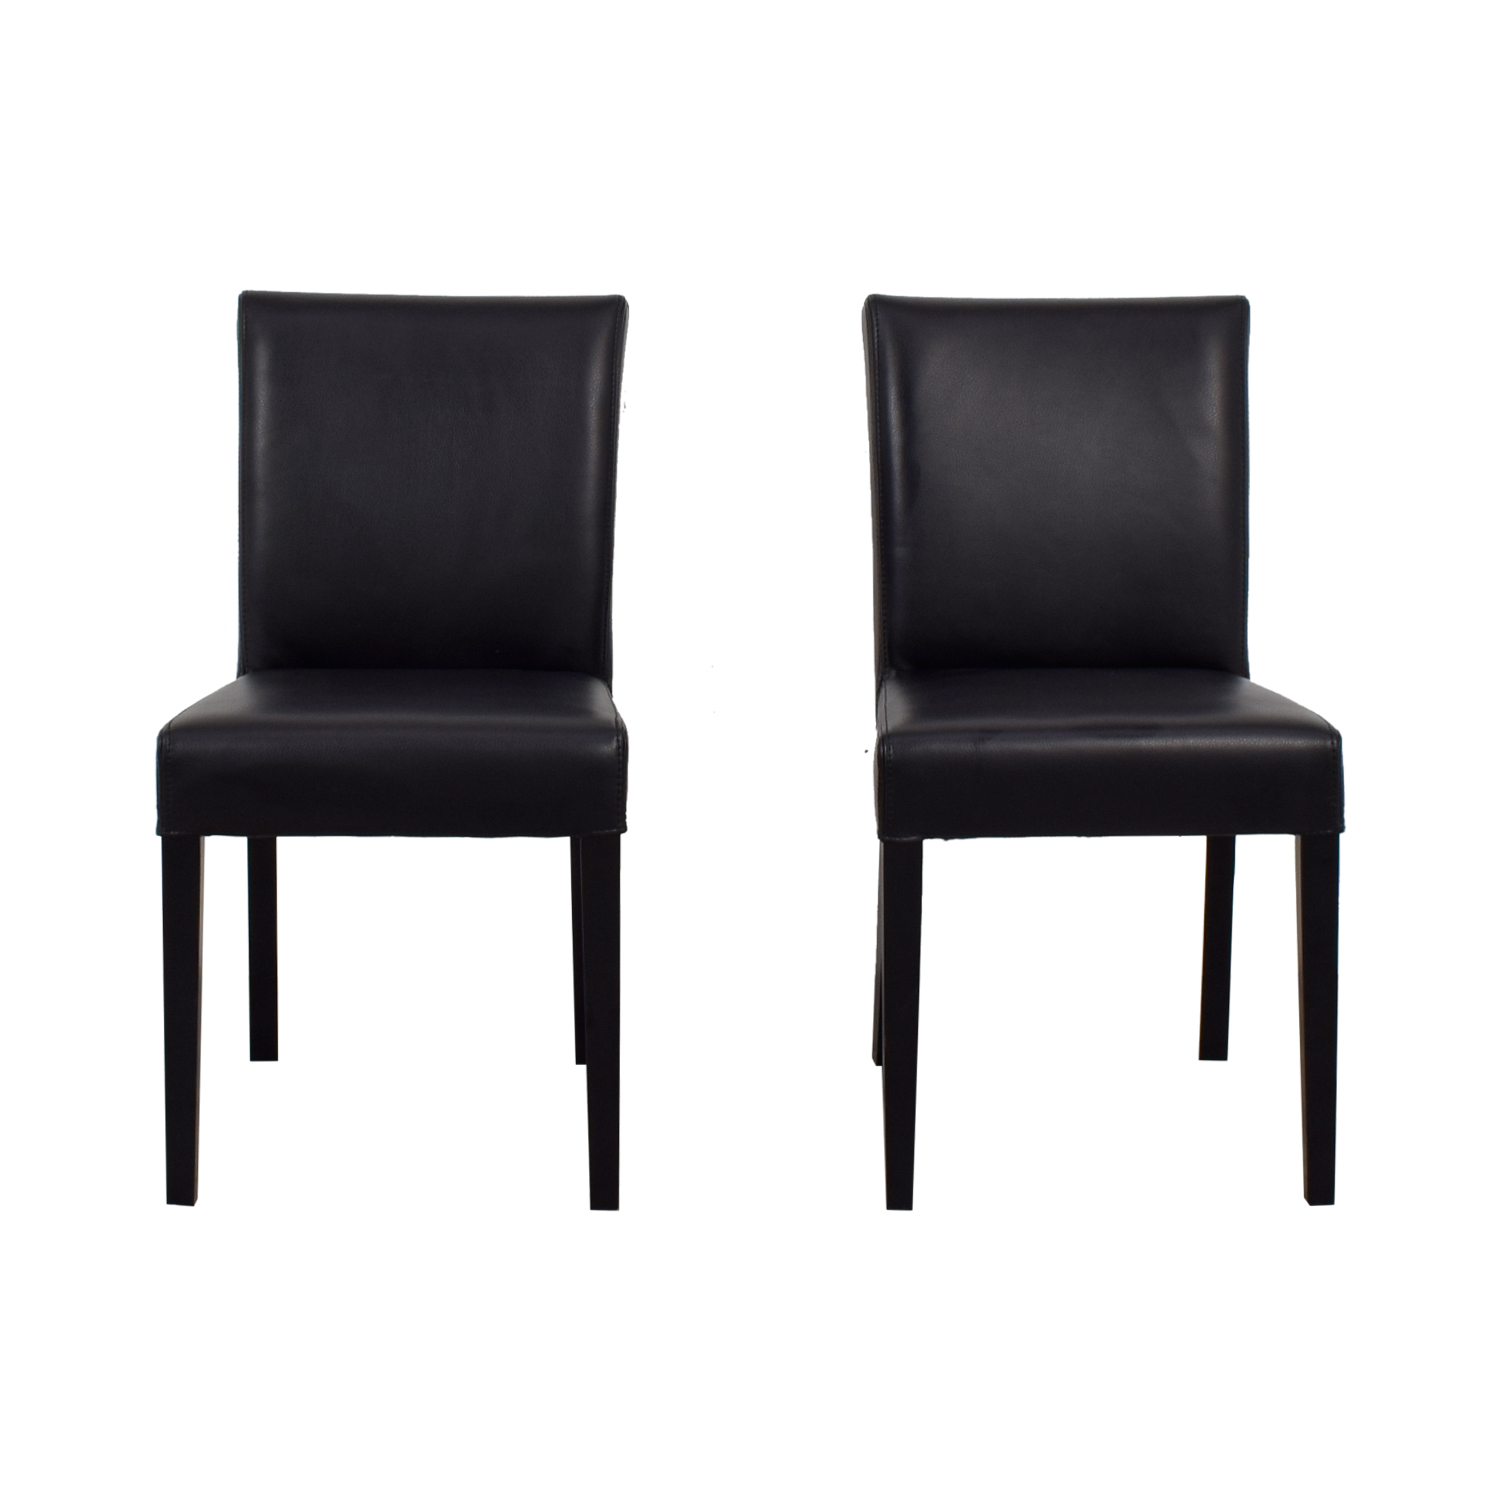 buy Crate & Barrel Lowe Onyx Black Leather Chairs Crate & Barrel